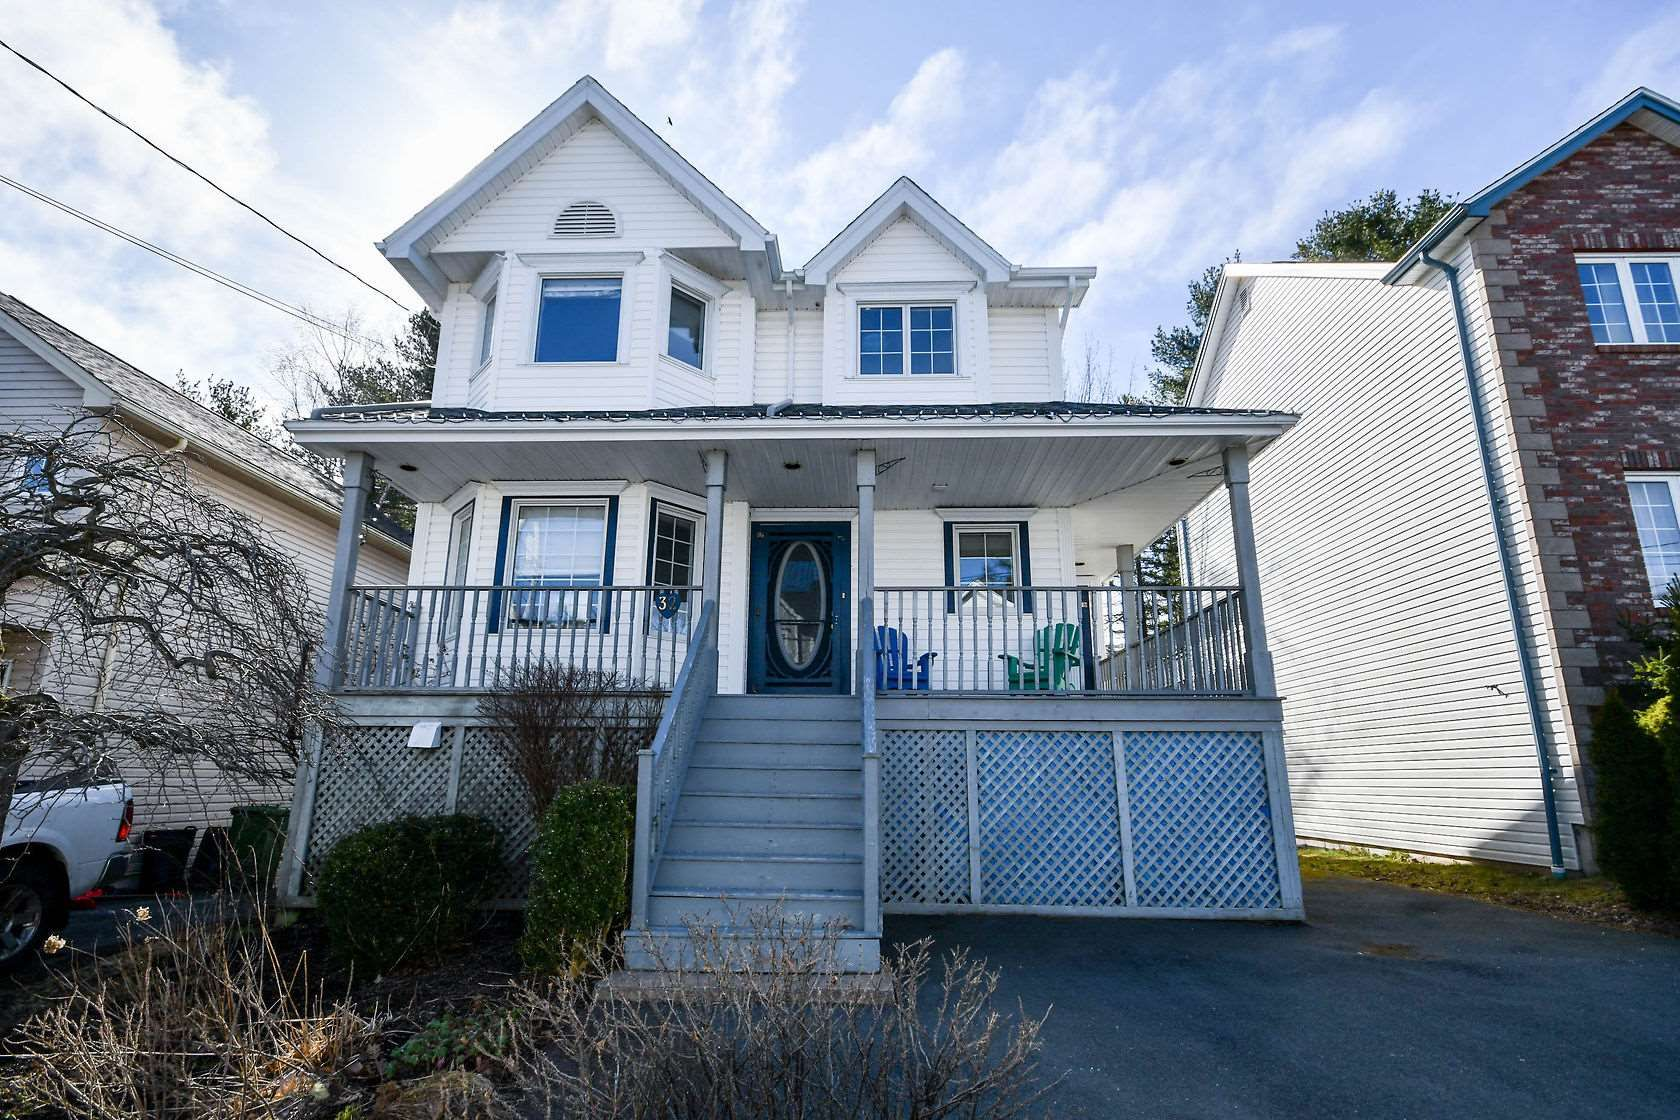 Main Photo: 32 James Winfield Lane in Bedford: 20-Bedford Residential for sale (Halifax-Dartmouth)  : MLS®# 202107532